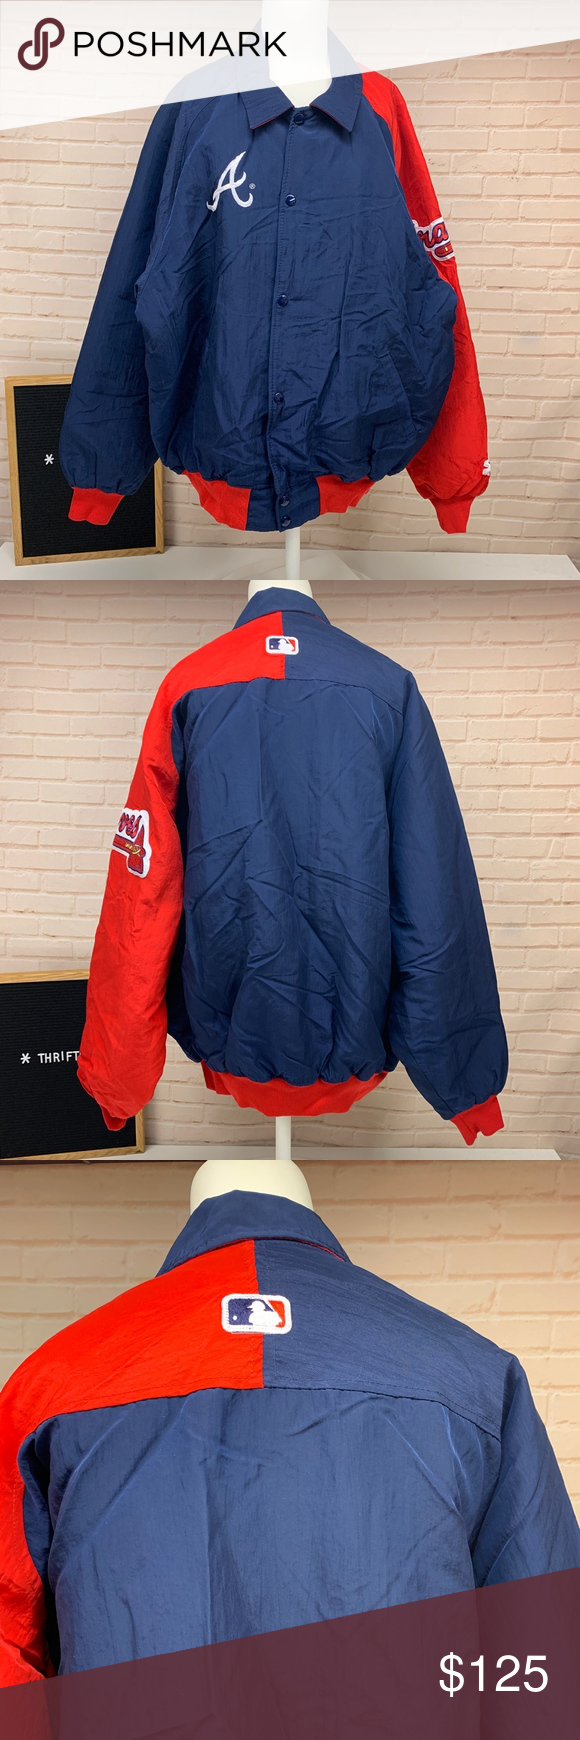 Atlanta Braves Starter Diamond Collection Jacket Clothes Design Collection Fashion Design